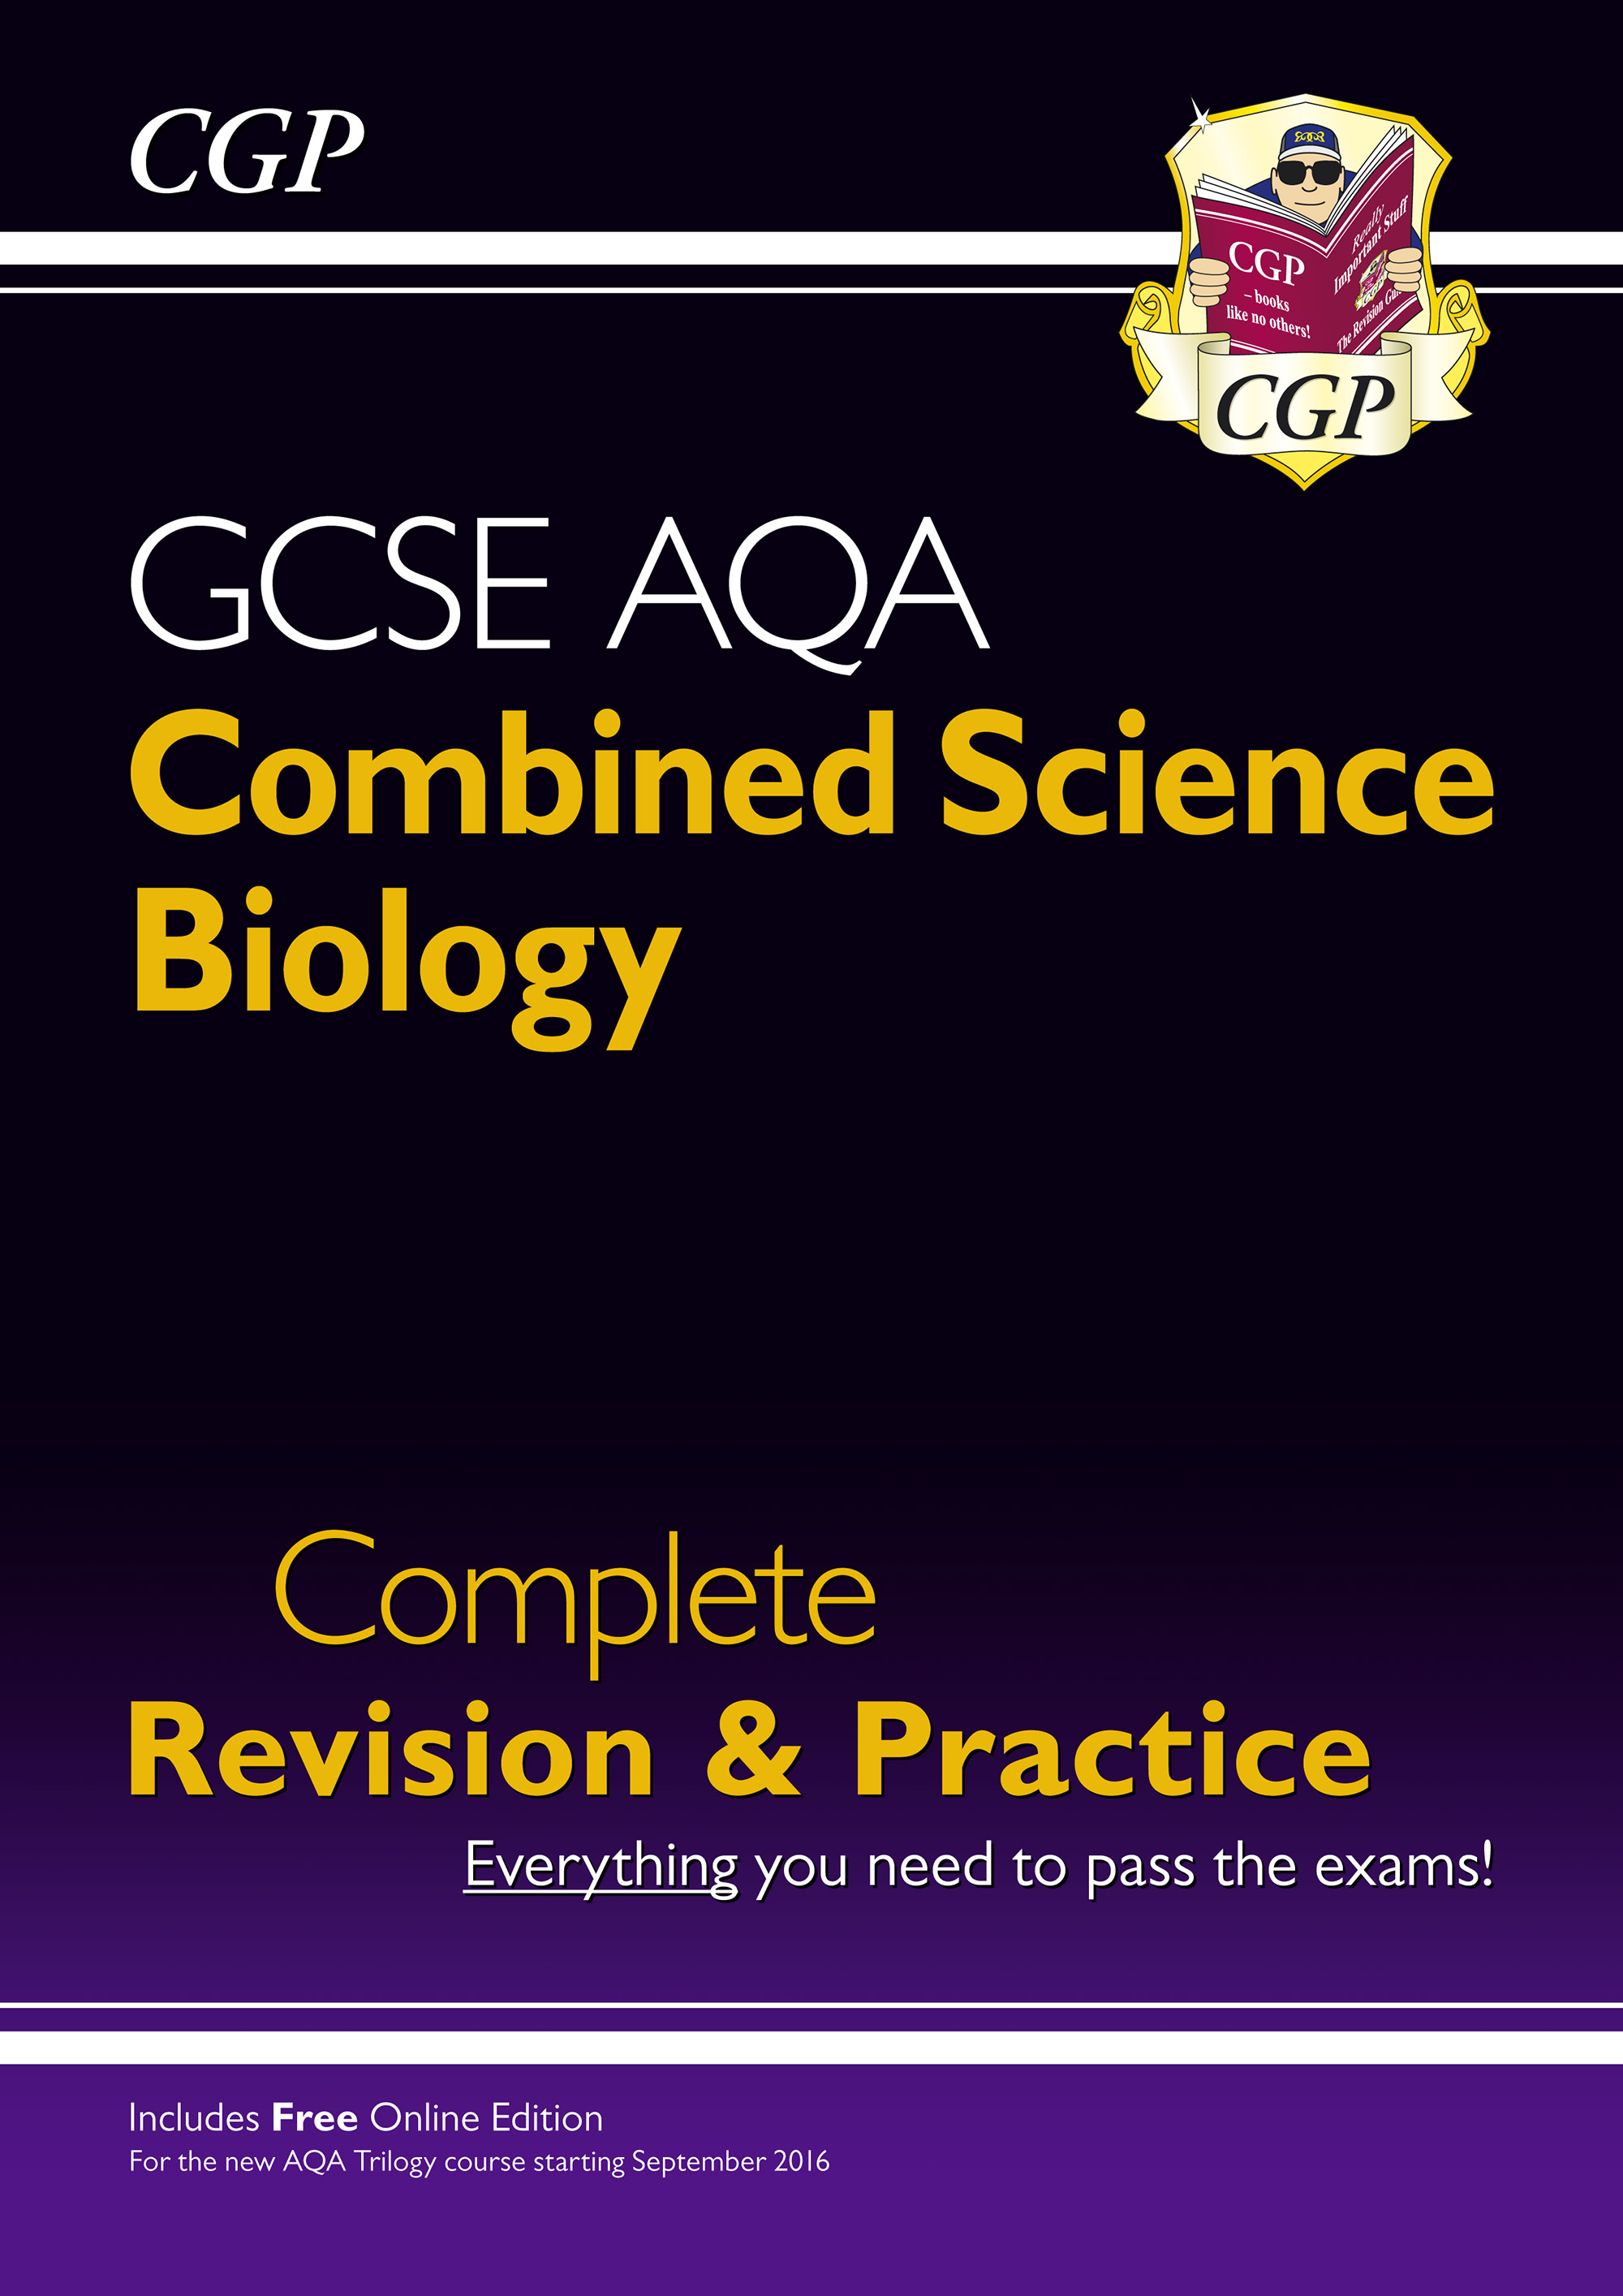 SCBAS41 - 9-1 GCSE Combined Science: Biology AQA Higher Complete Revision & Practice with Online Edi